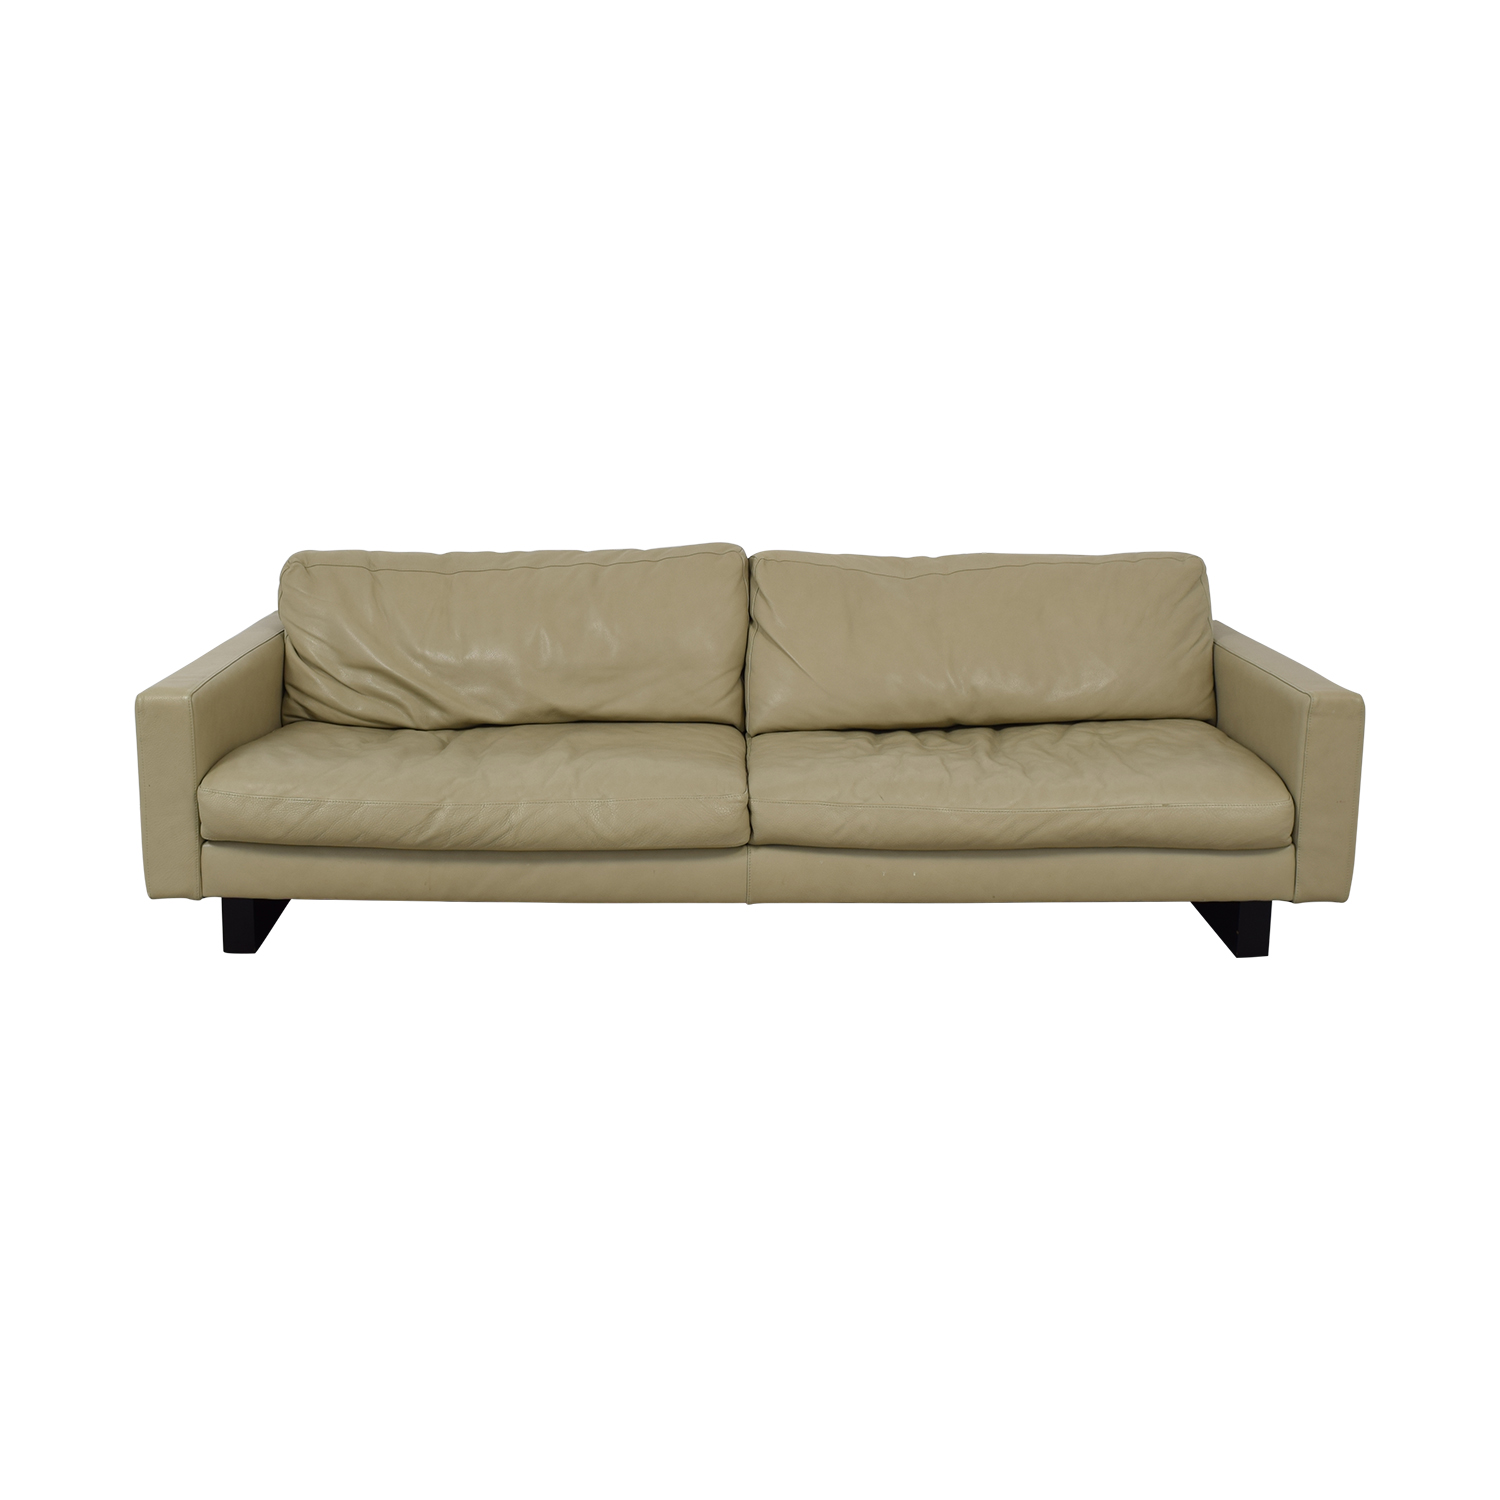 Room & Board Room & Board Hess Leather Sofa Sofas